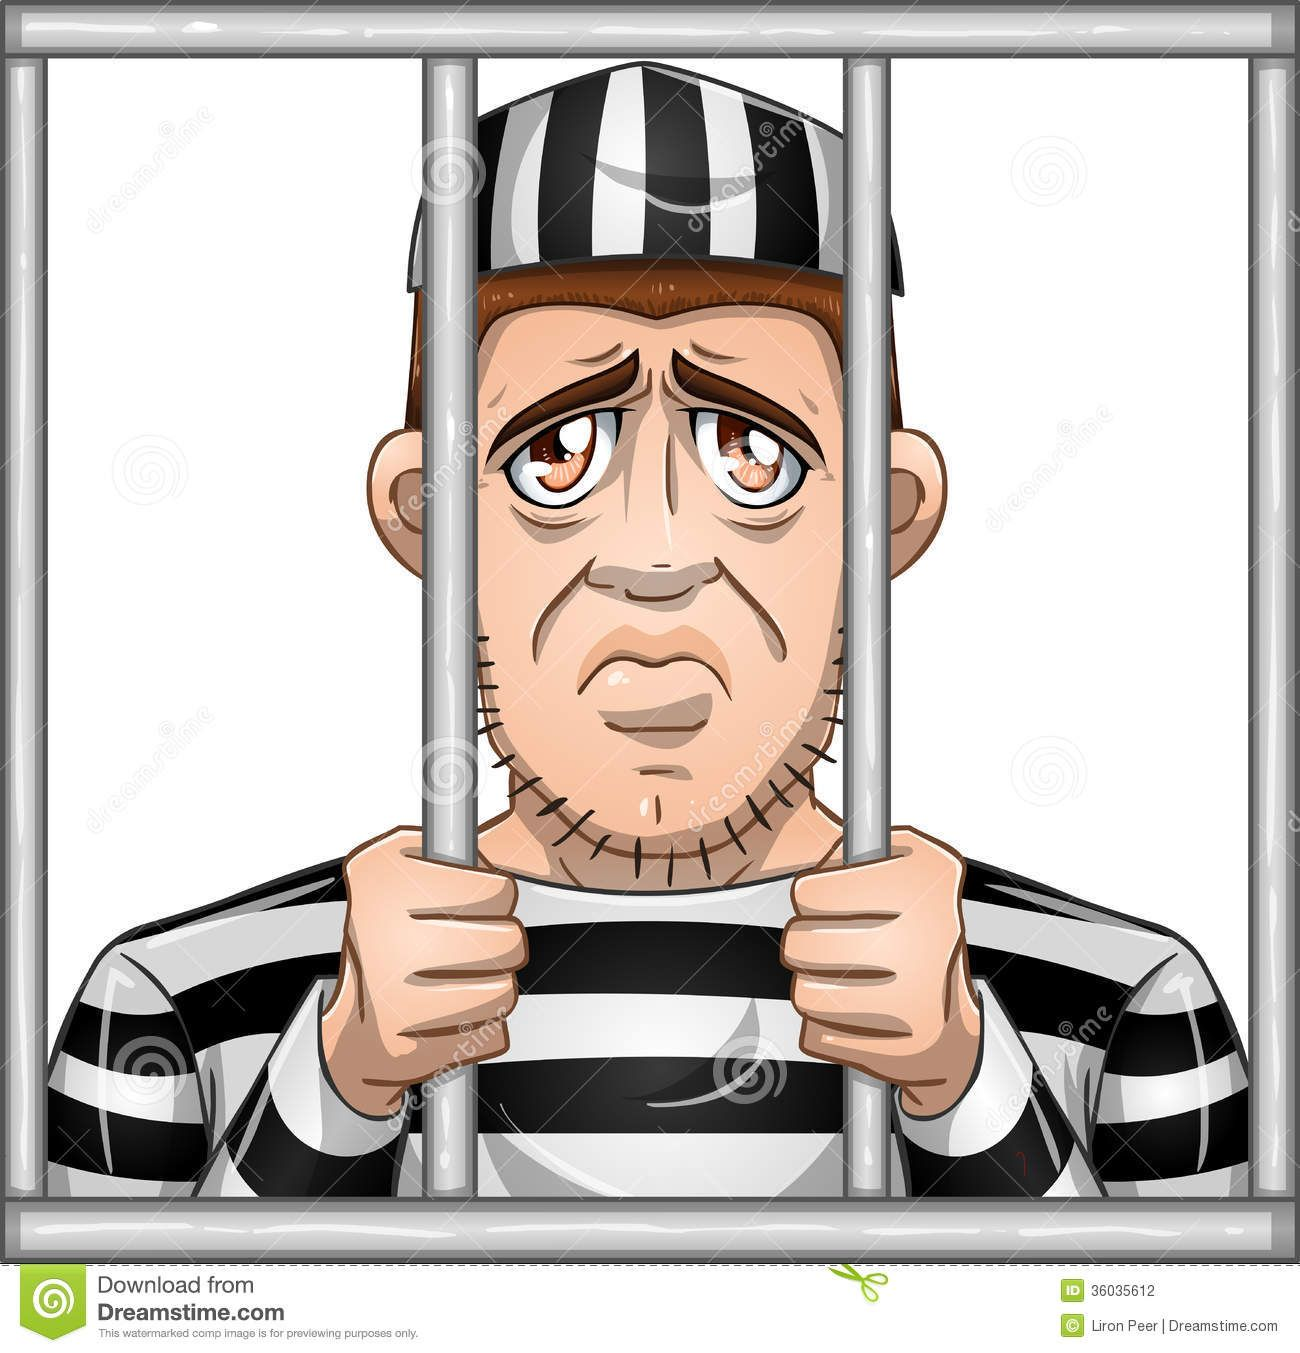 Cartoon prisoner clipart png freeuse stock Jail Cartoon Clip Art | Sad Prisoner Behind Bars Stock Photography ... png freeuse stock